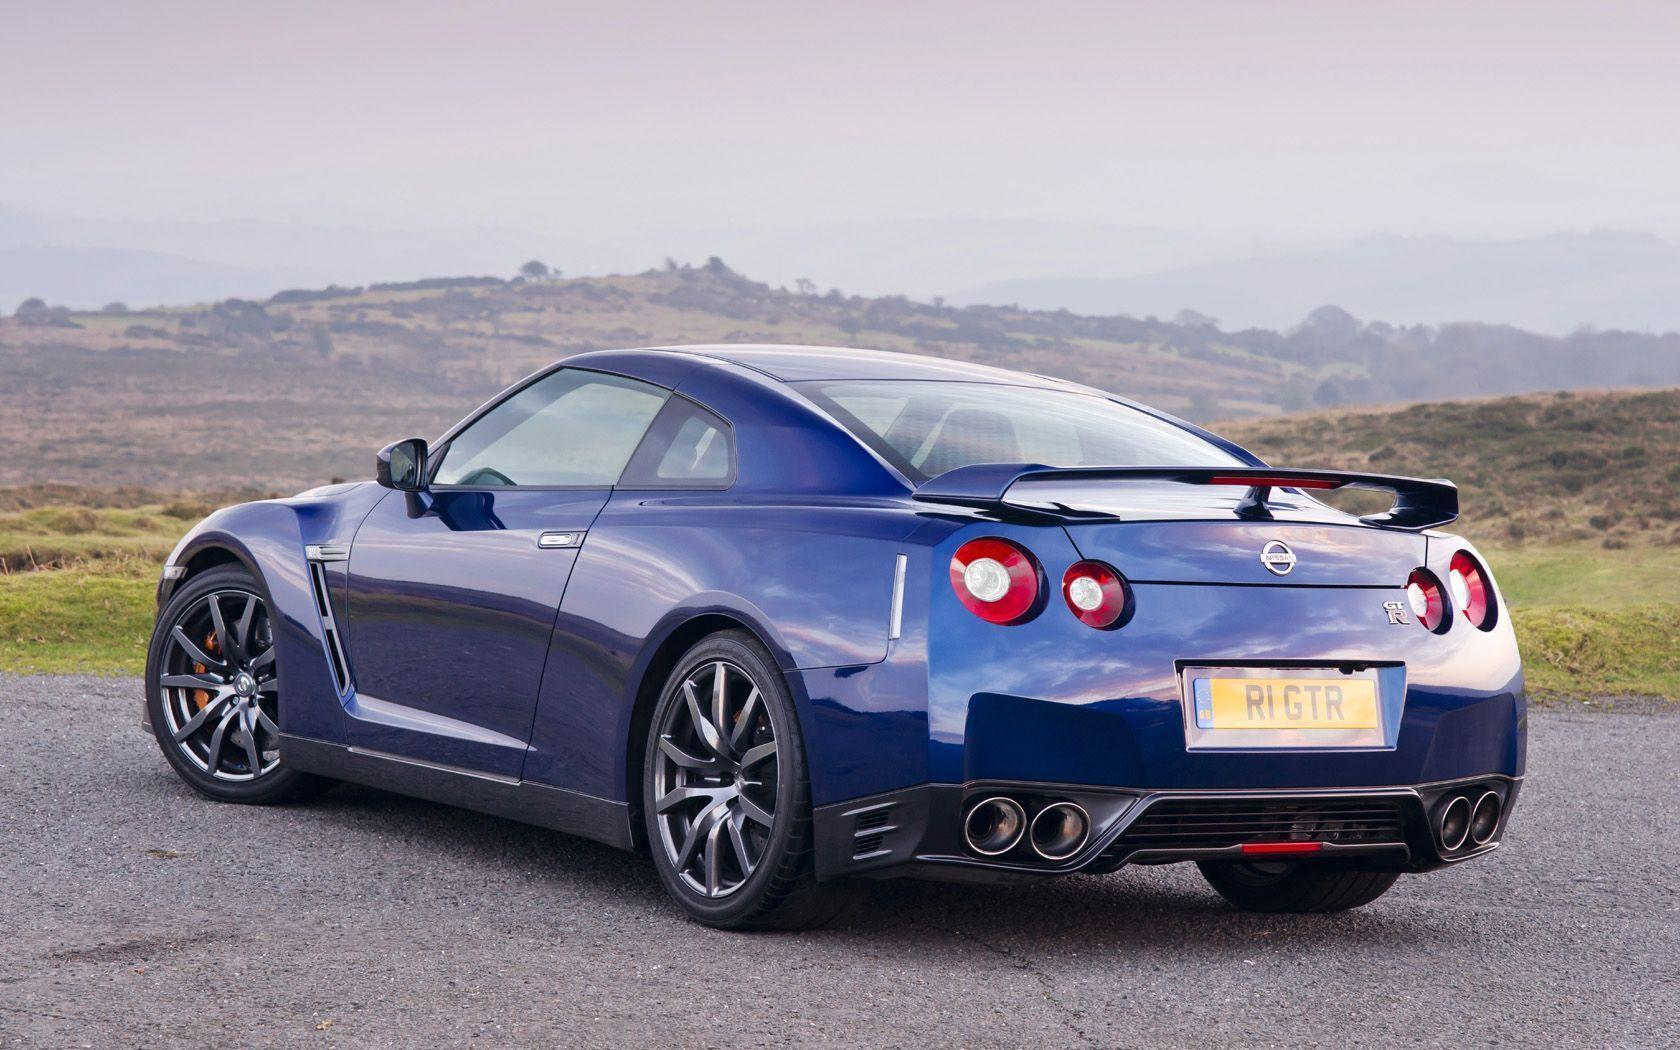 Nissan Gtr R35 Wallpapers Group 90: Blue Nissan GT-R Wallpapers